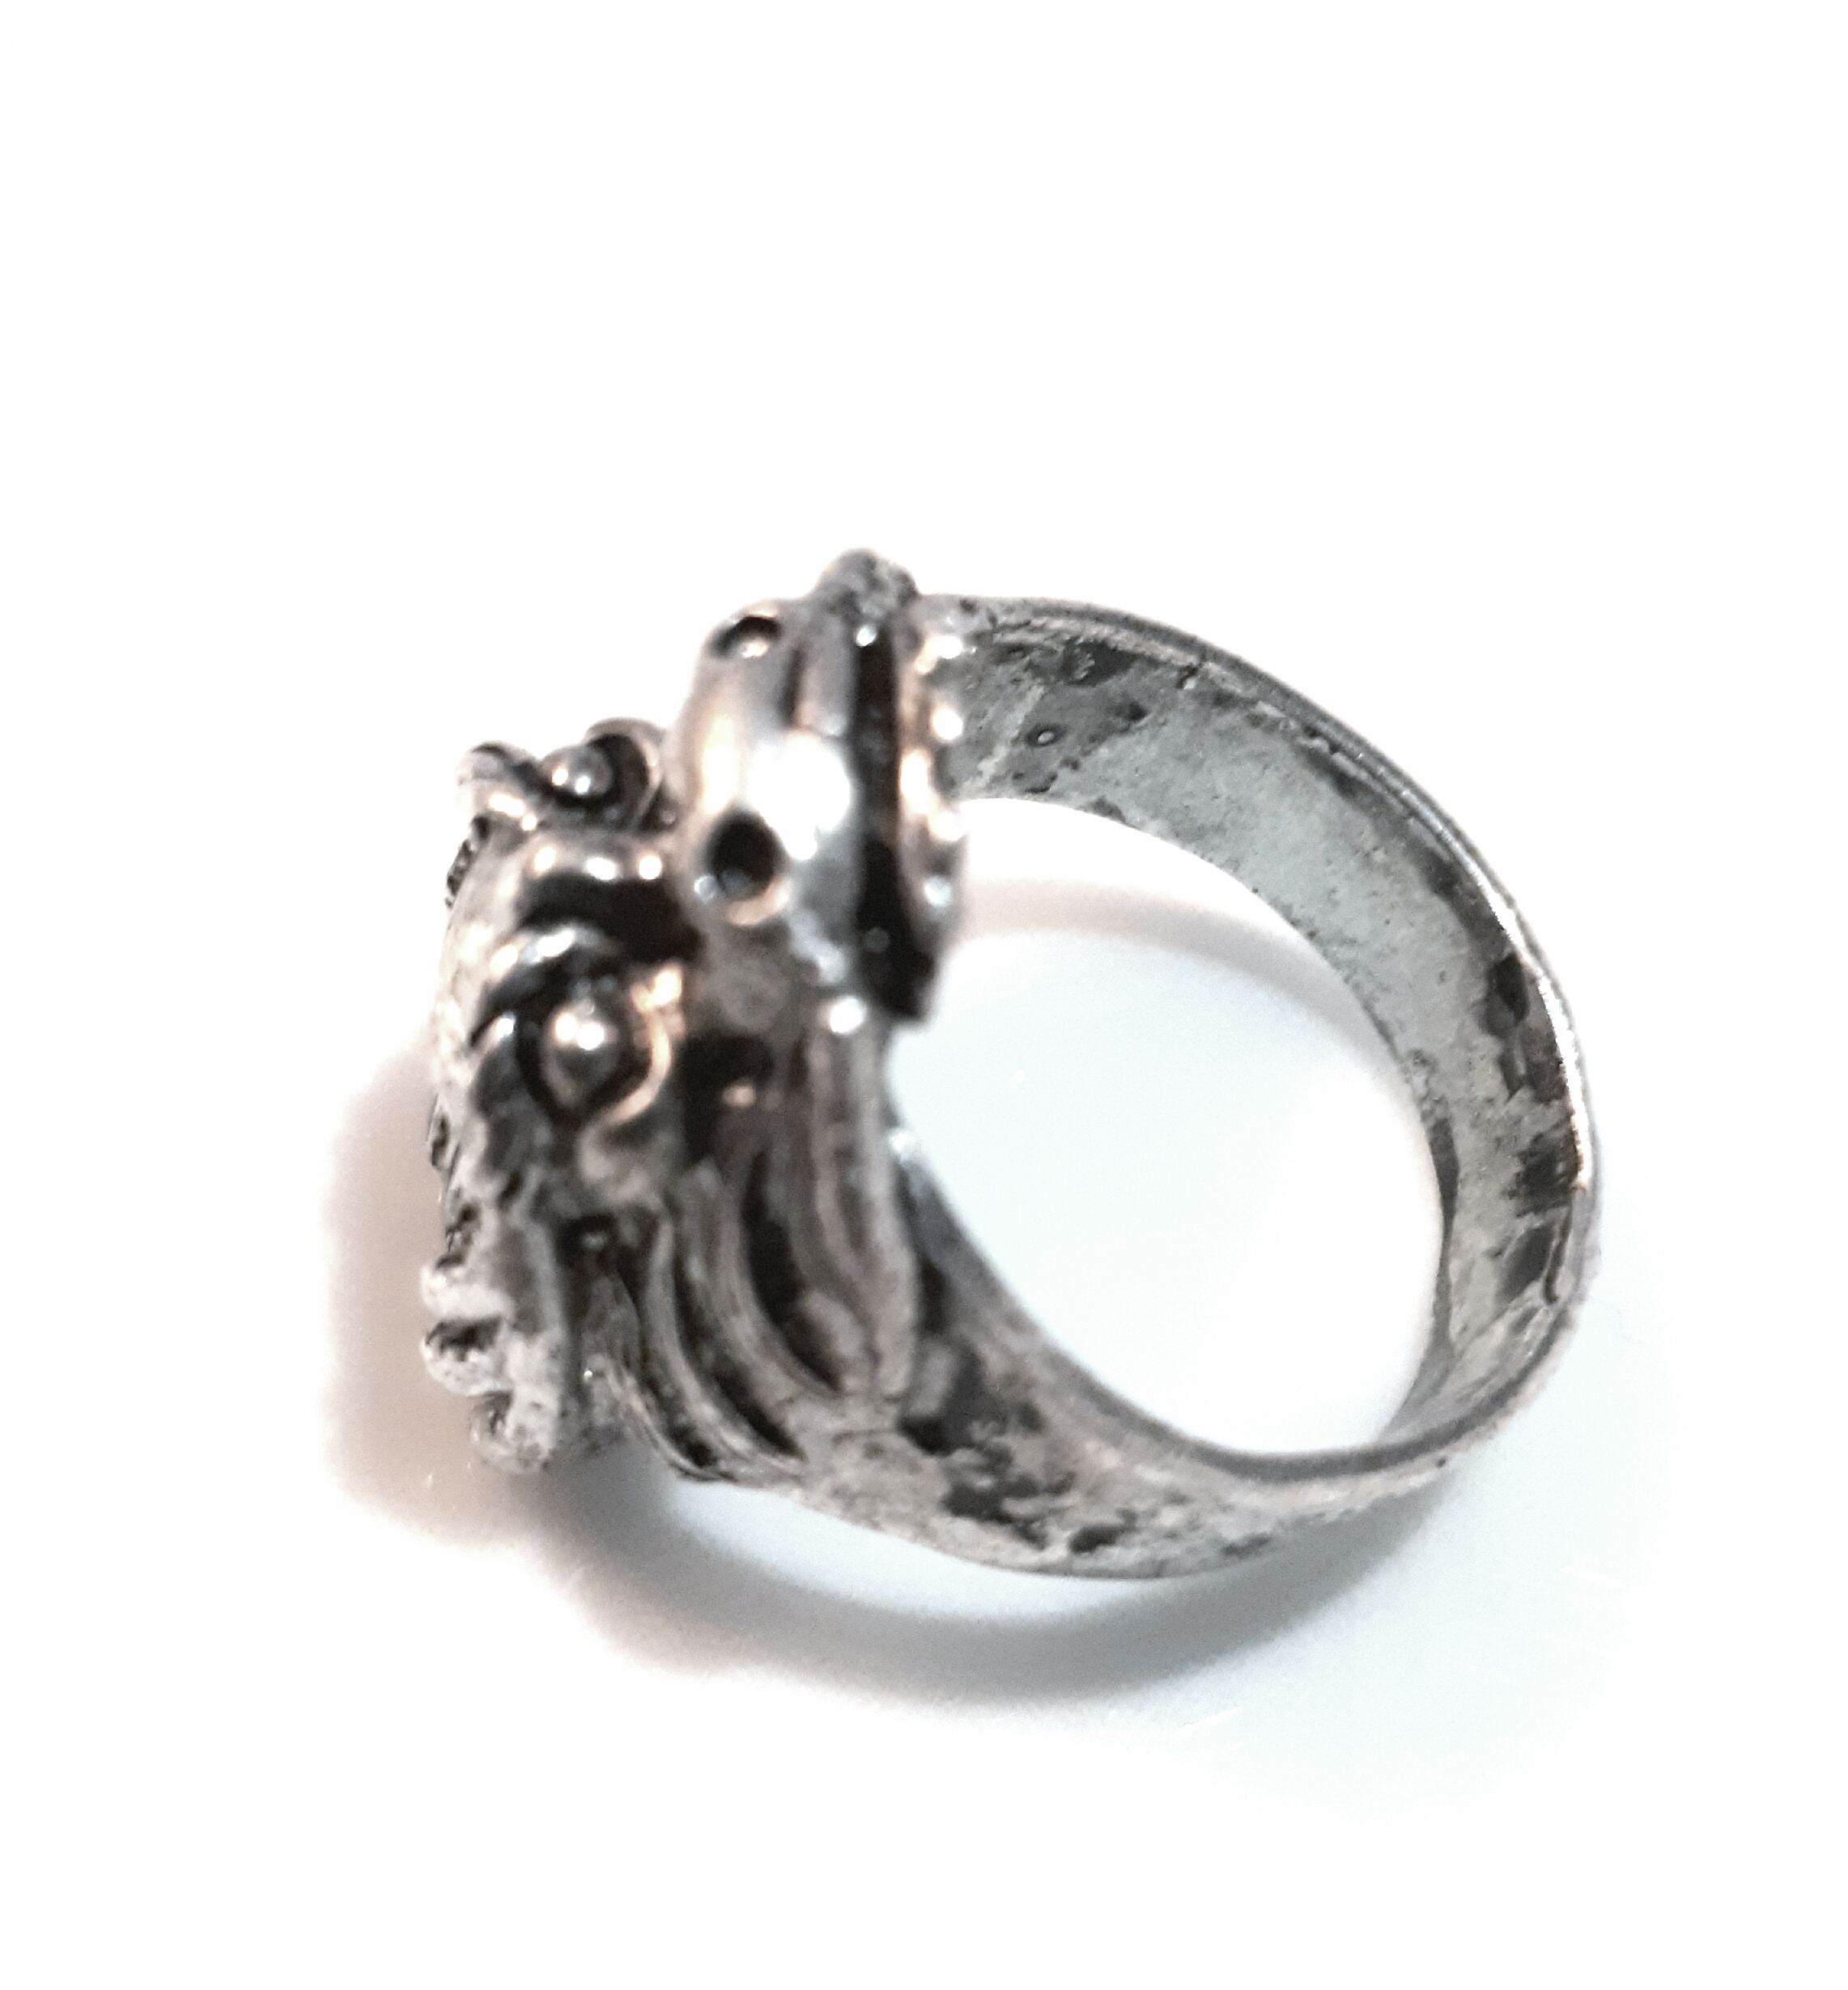 hersk rock and gun full black information set find more awesome wedding engagement decorating his of photo website ring jewellrys about size design hers diamond purple rings punk heart promise beautiful